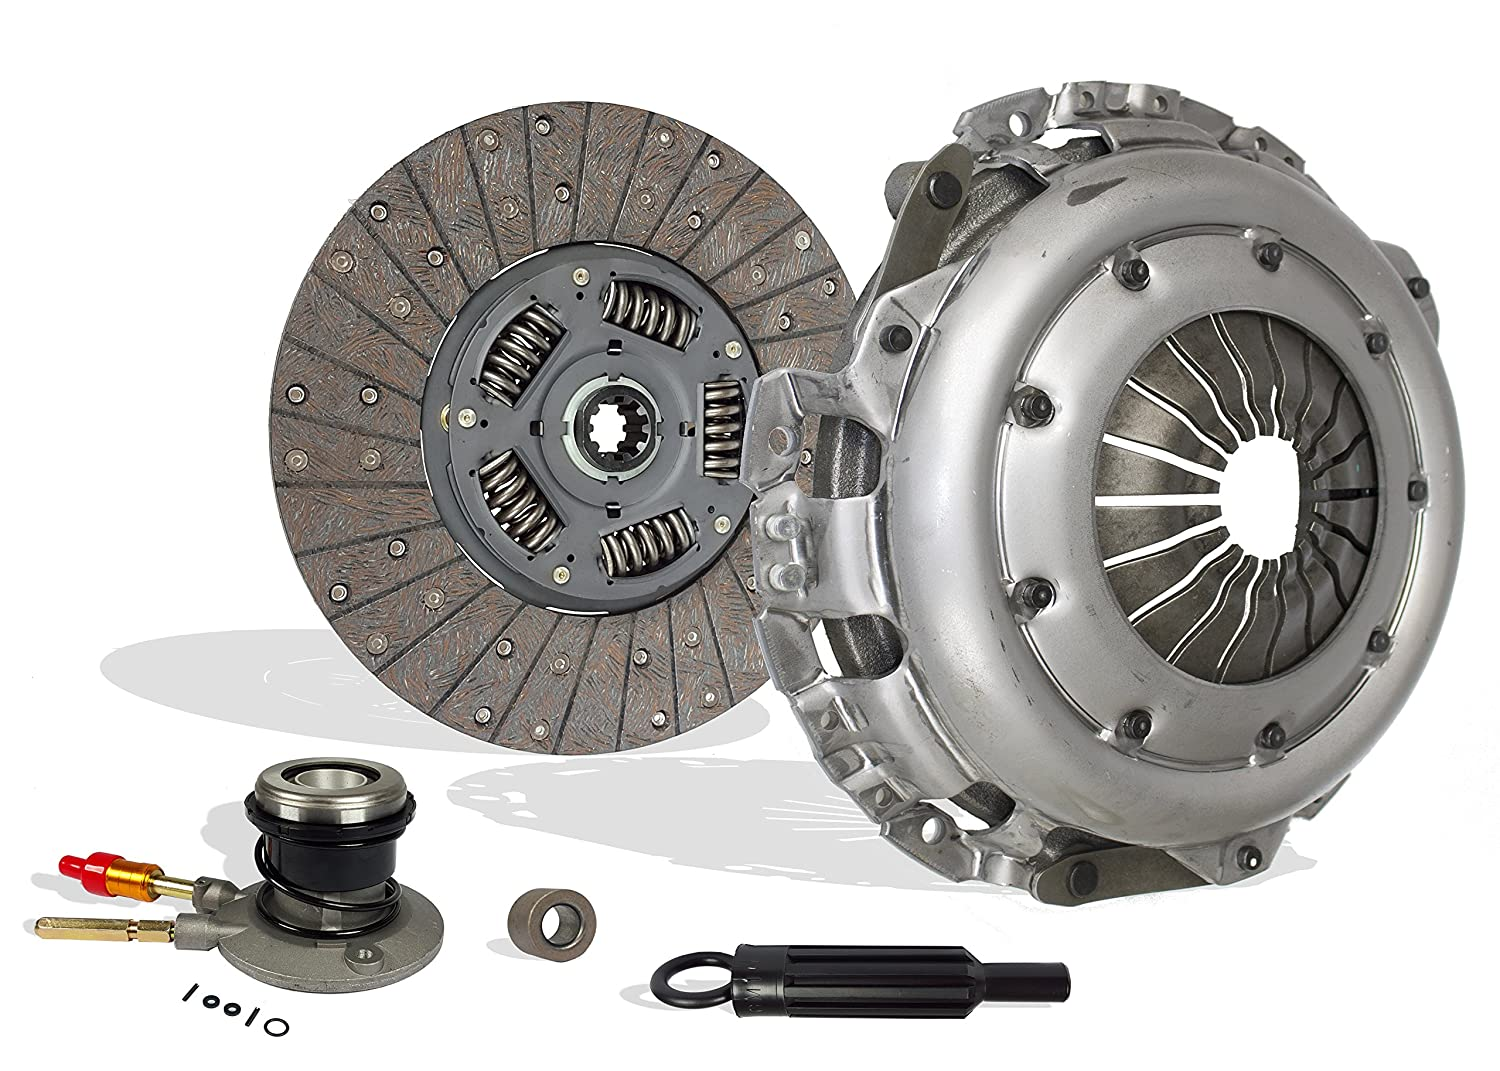 Amazon com: Clutch And Slave Kit Works With Chevy C1500 P30